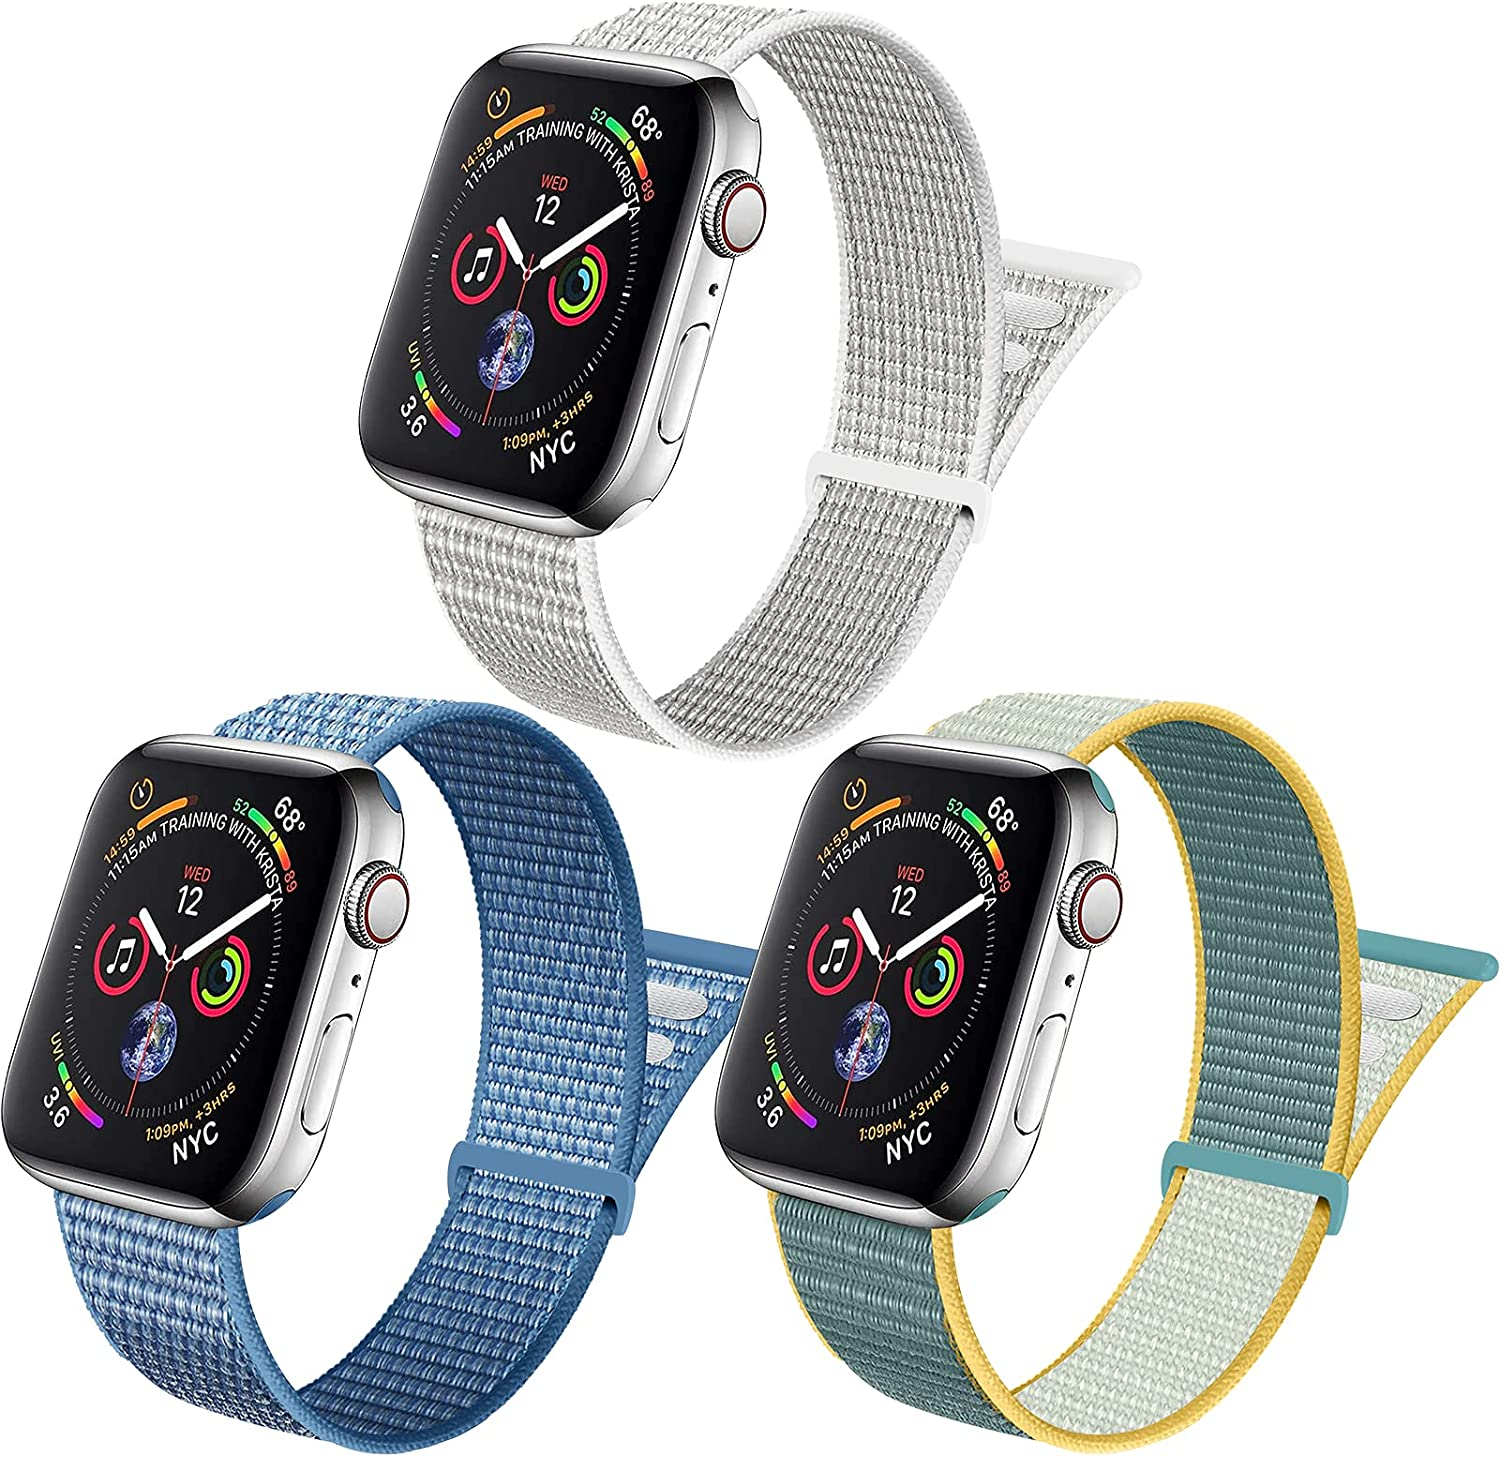 ZUQUEE 3Pack Nylon Loop Compatible with Apple Watch,Stretchy Soft Adjustable Elastic Women Men Sports Straps for Iwatch Series 7/6/5/4/3/2/1/SE,Summit White/Cape Cod Blue/Sunshine,42/44/45mm